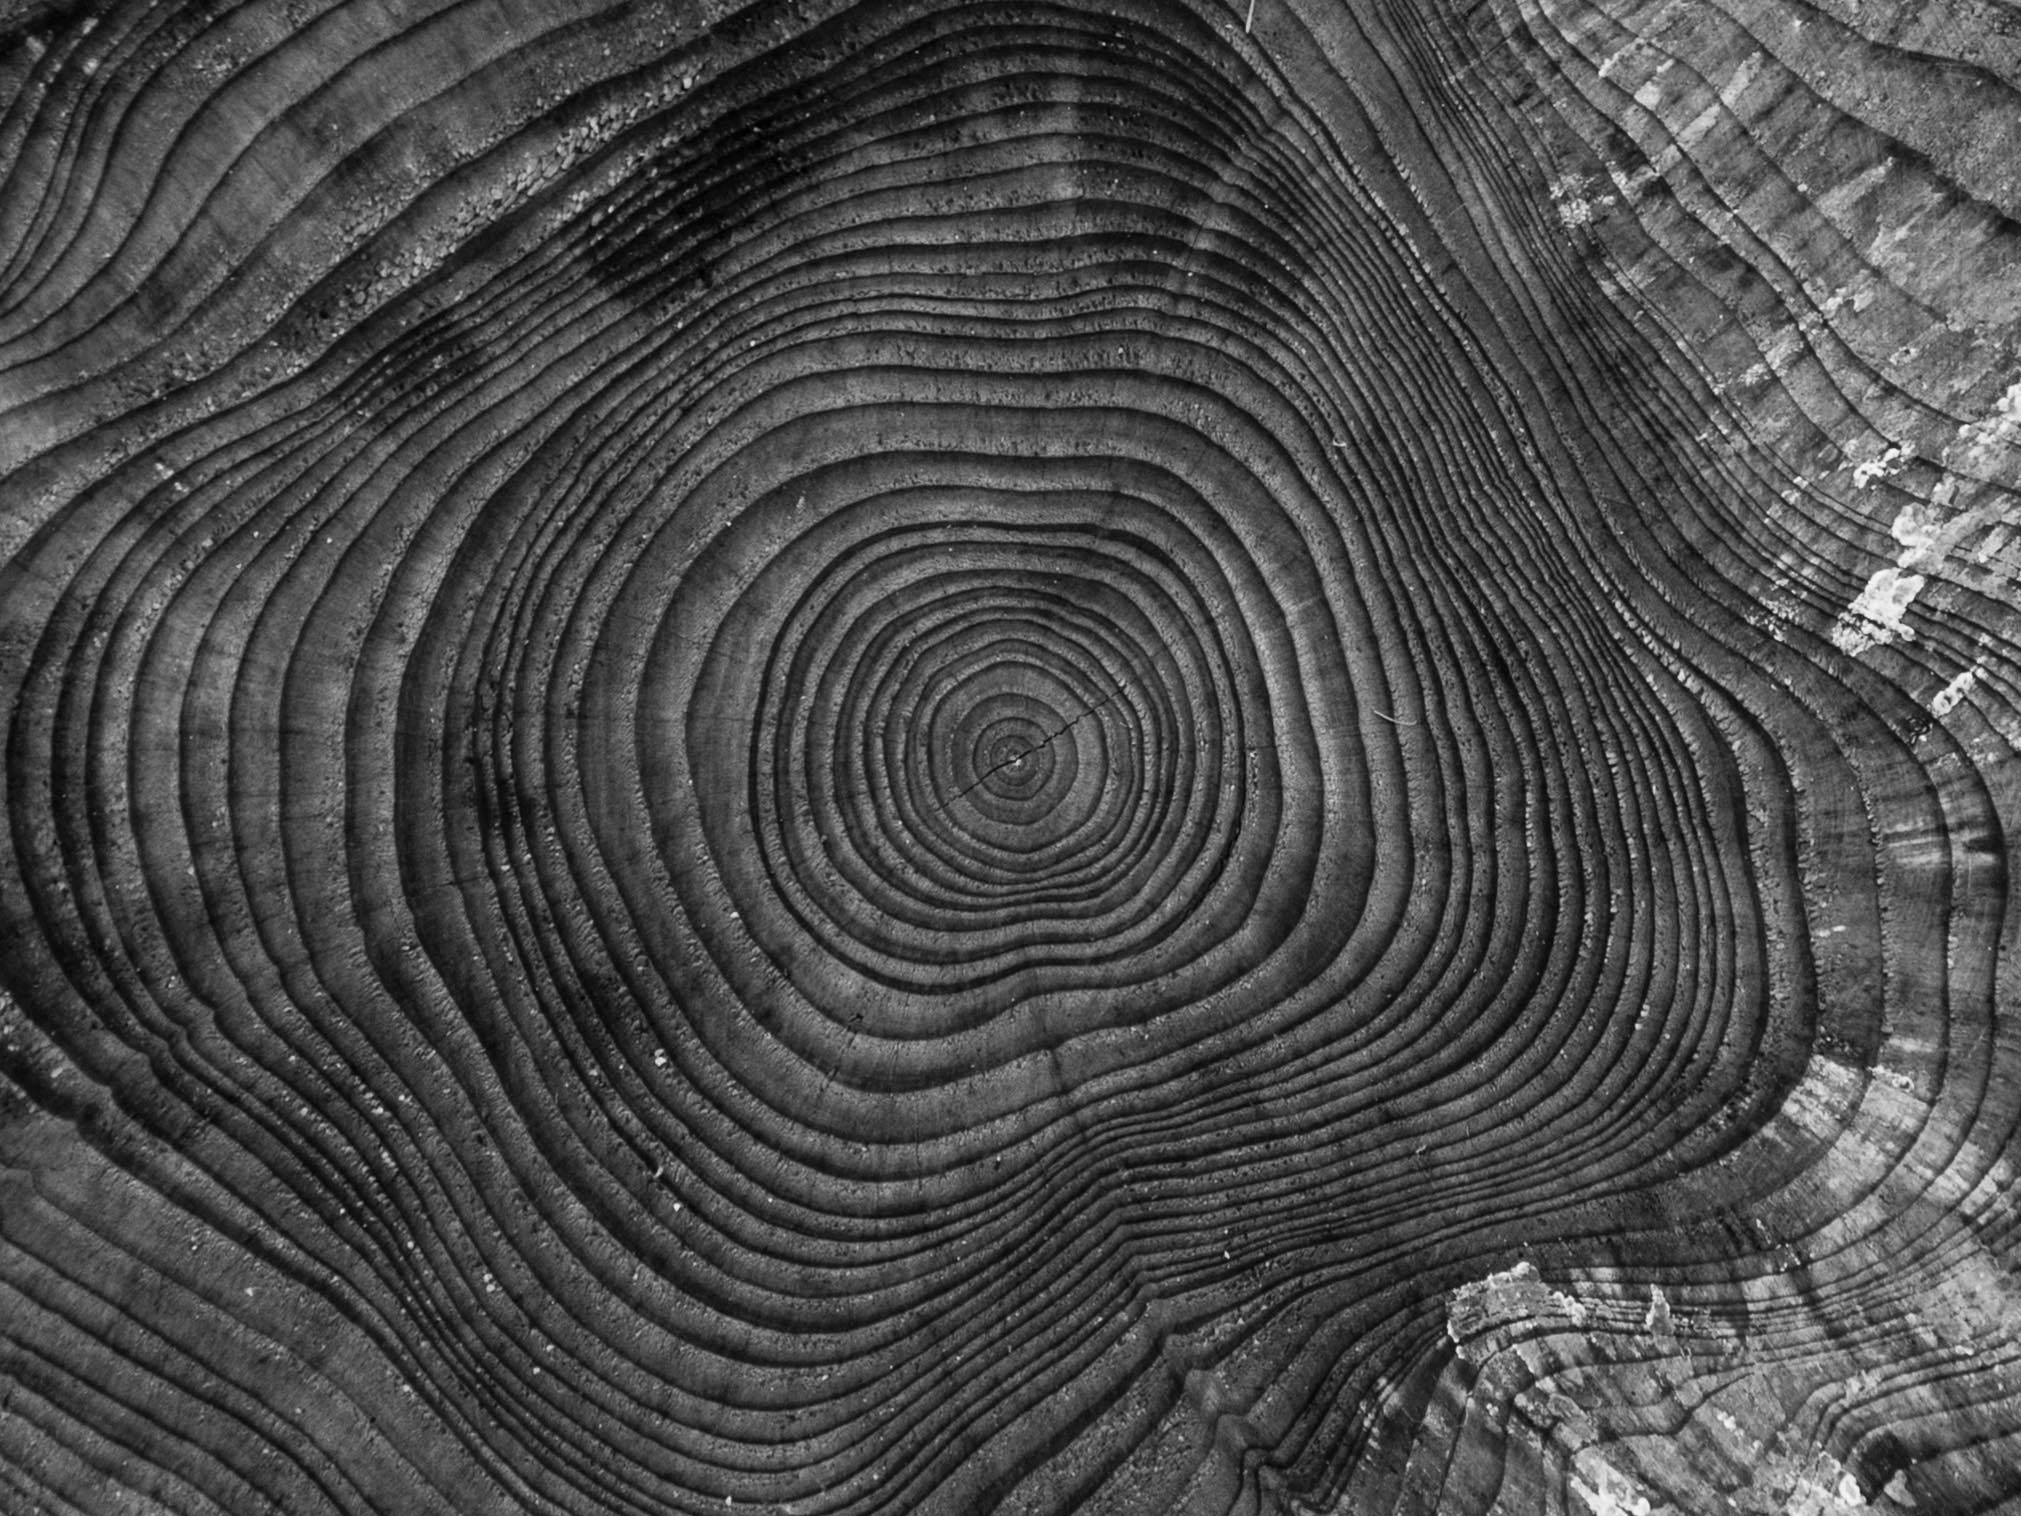 tree-nature-abstract-black-and-white-wood-photography-844367-pxhere.com.jpg